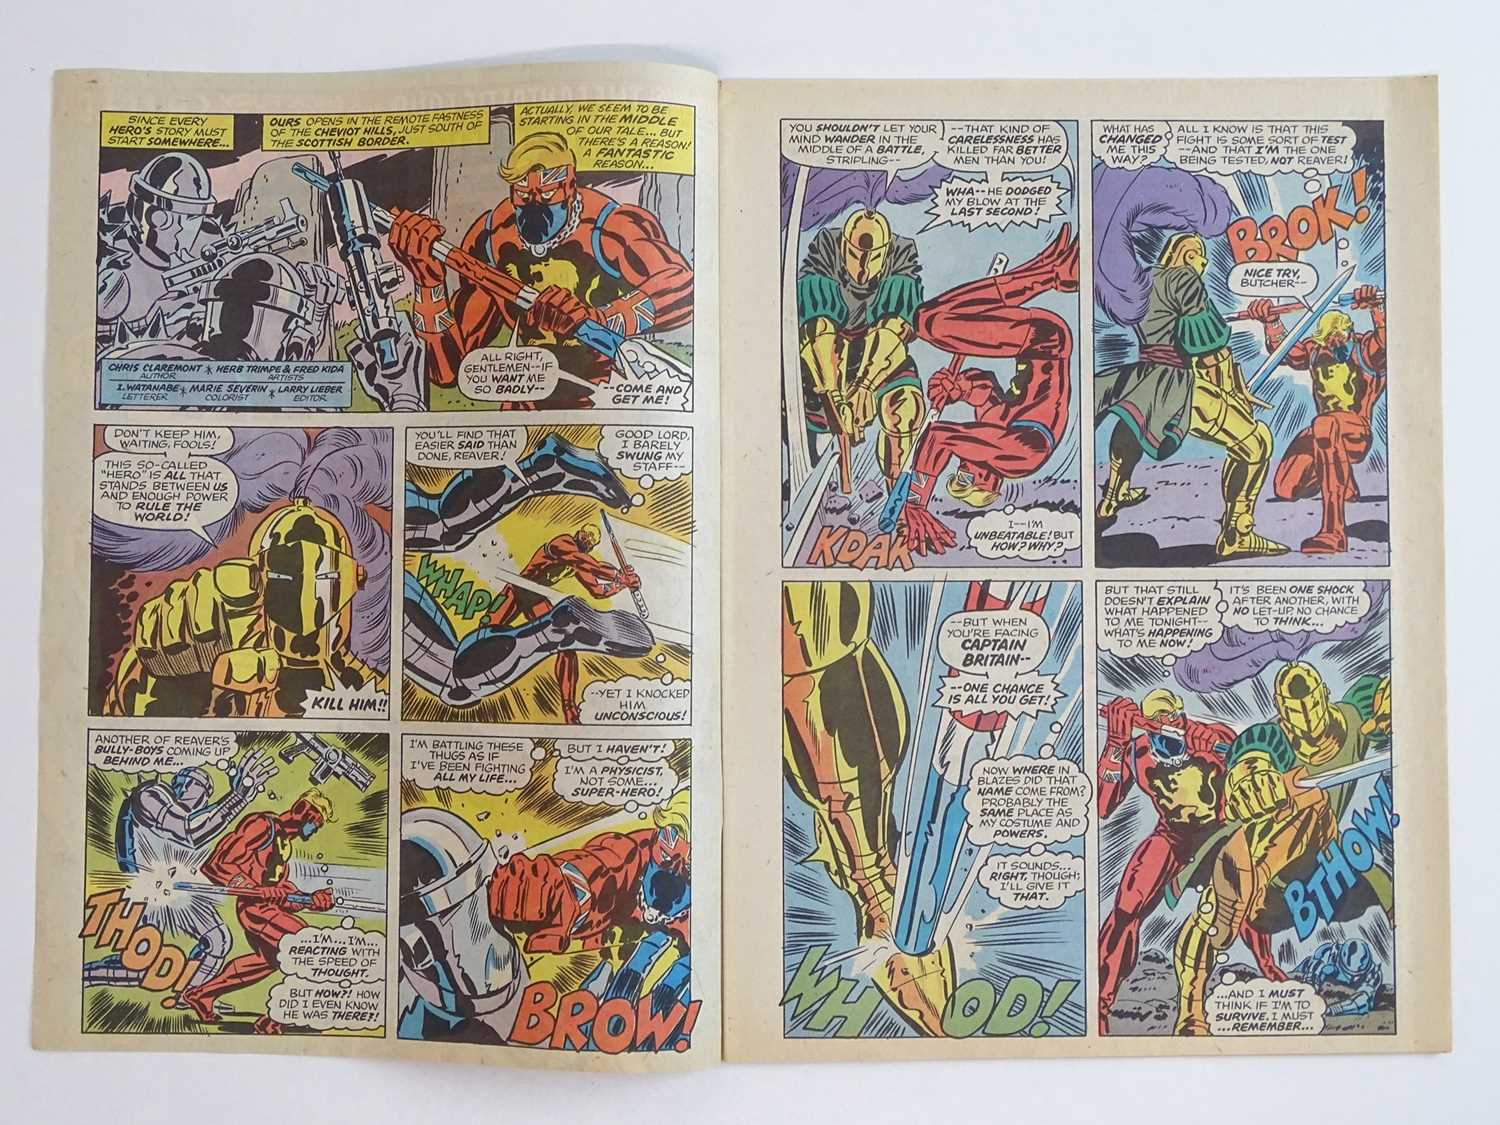 CAPTAIN BRITAIN #1 - (1976 - BRITISH MARVEL) - Origin and First appearance of Captain Britain - Image 4 of 12